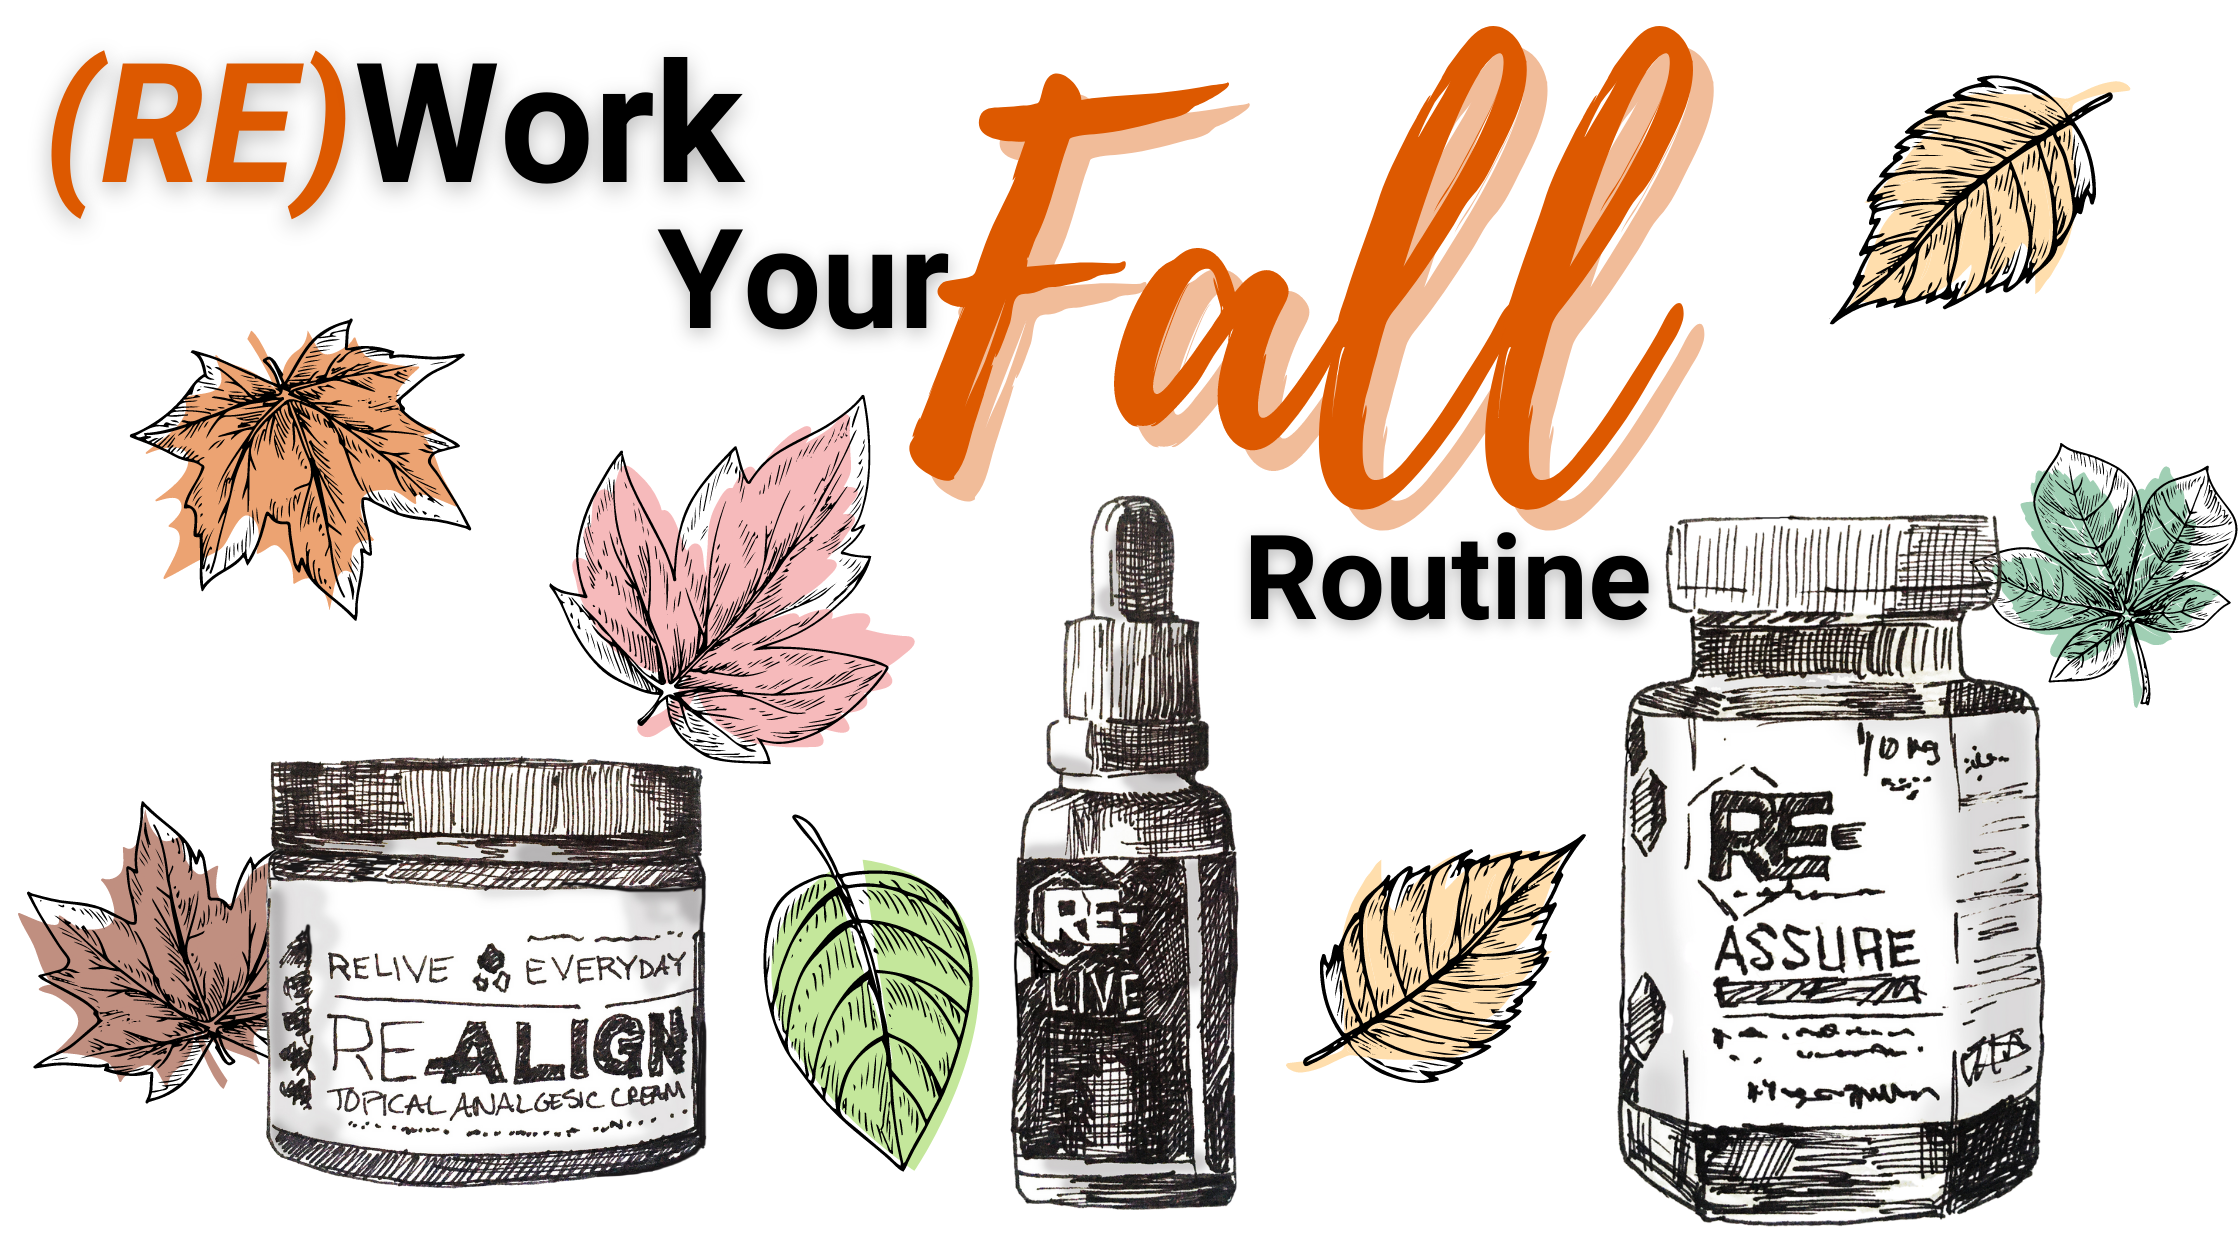 Rework Your fall routine